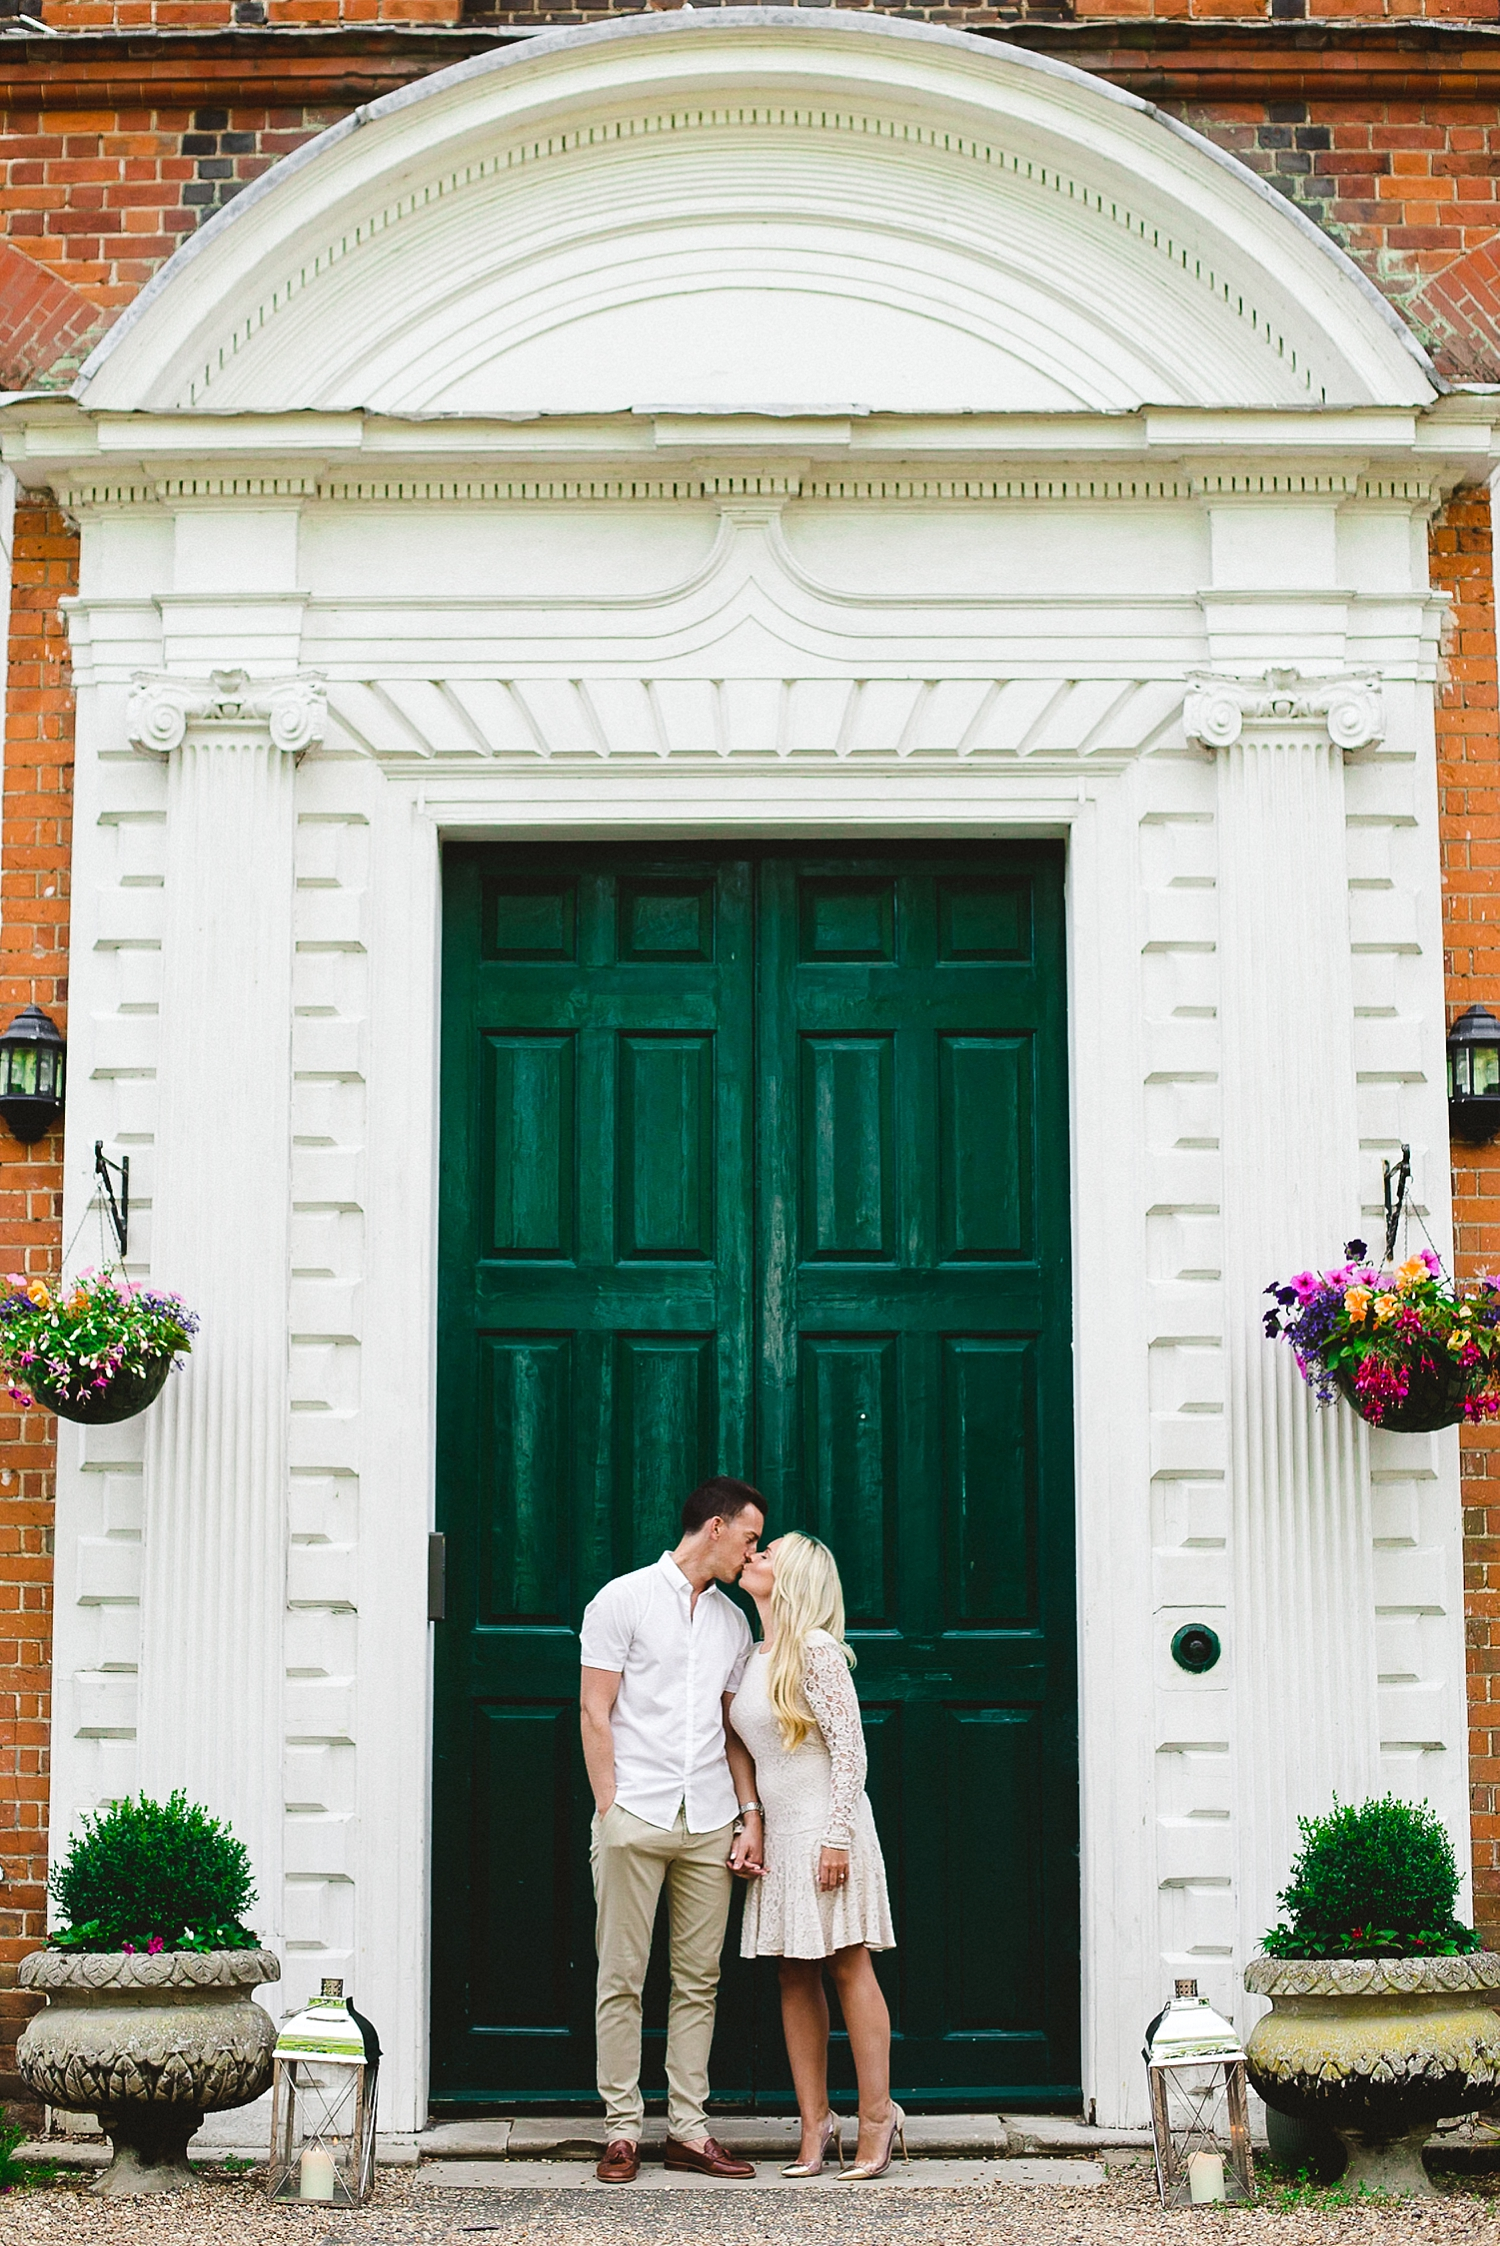 Gosfield_Hall_Wedding_Photographer_0008.jpg